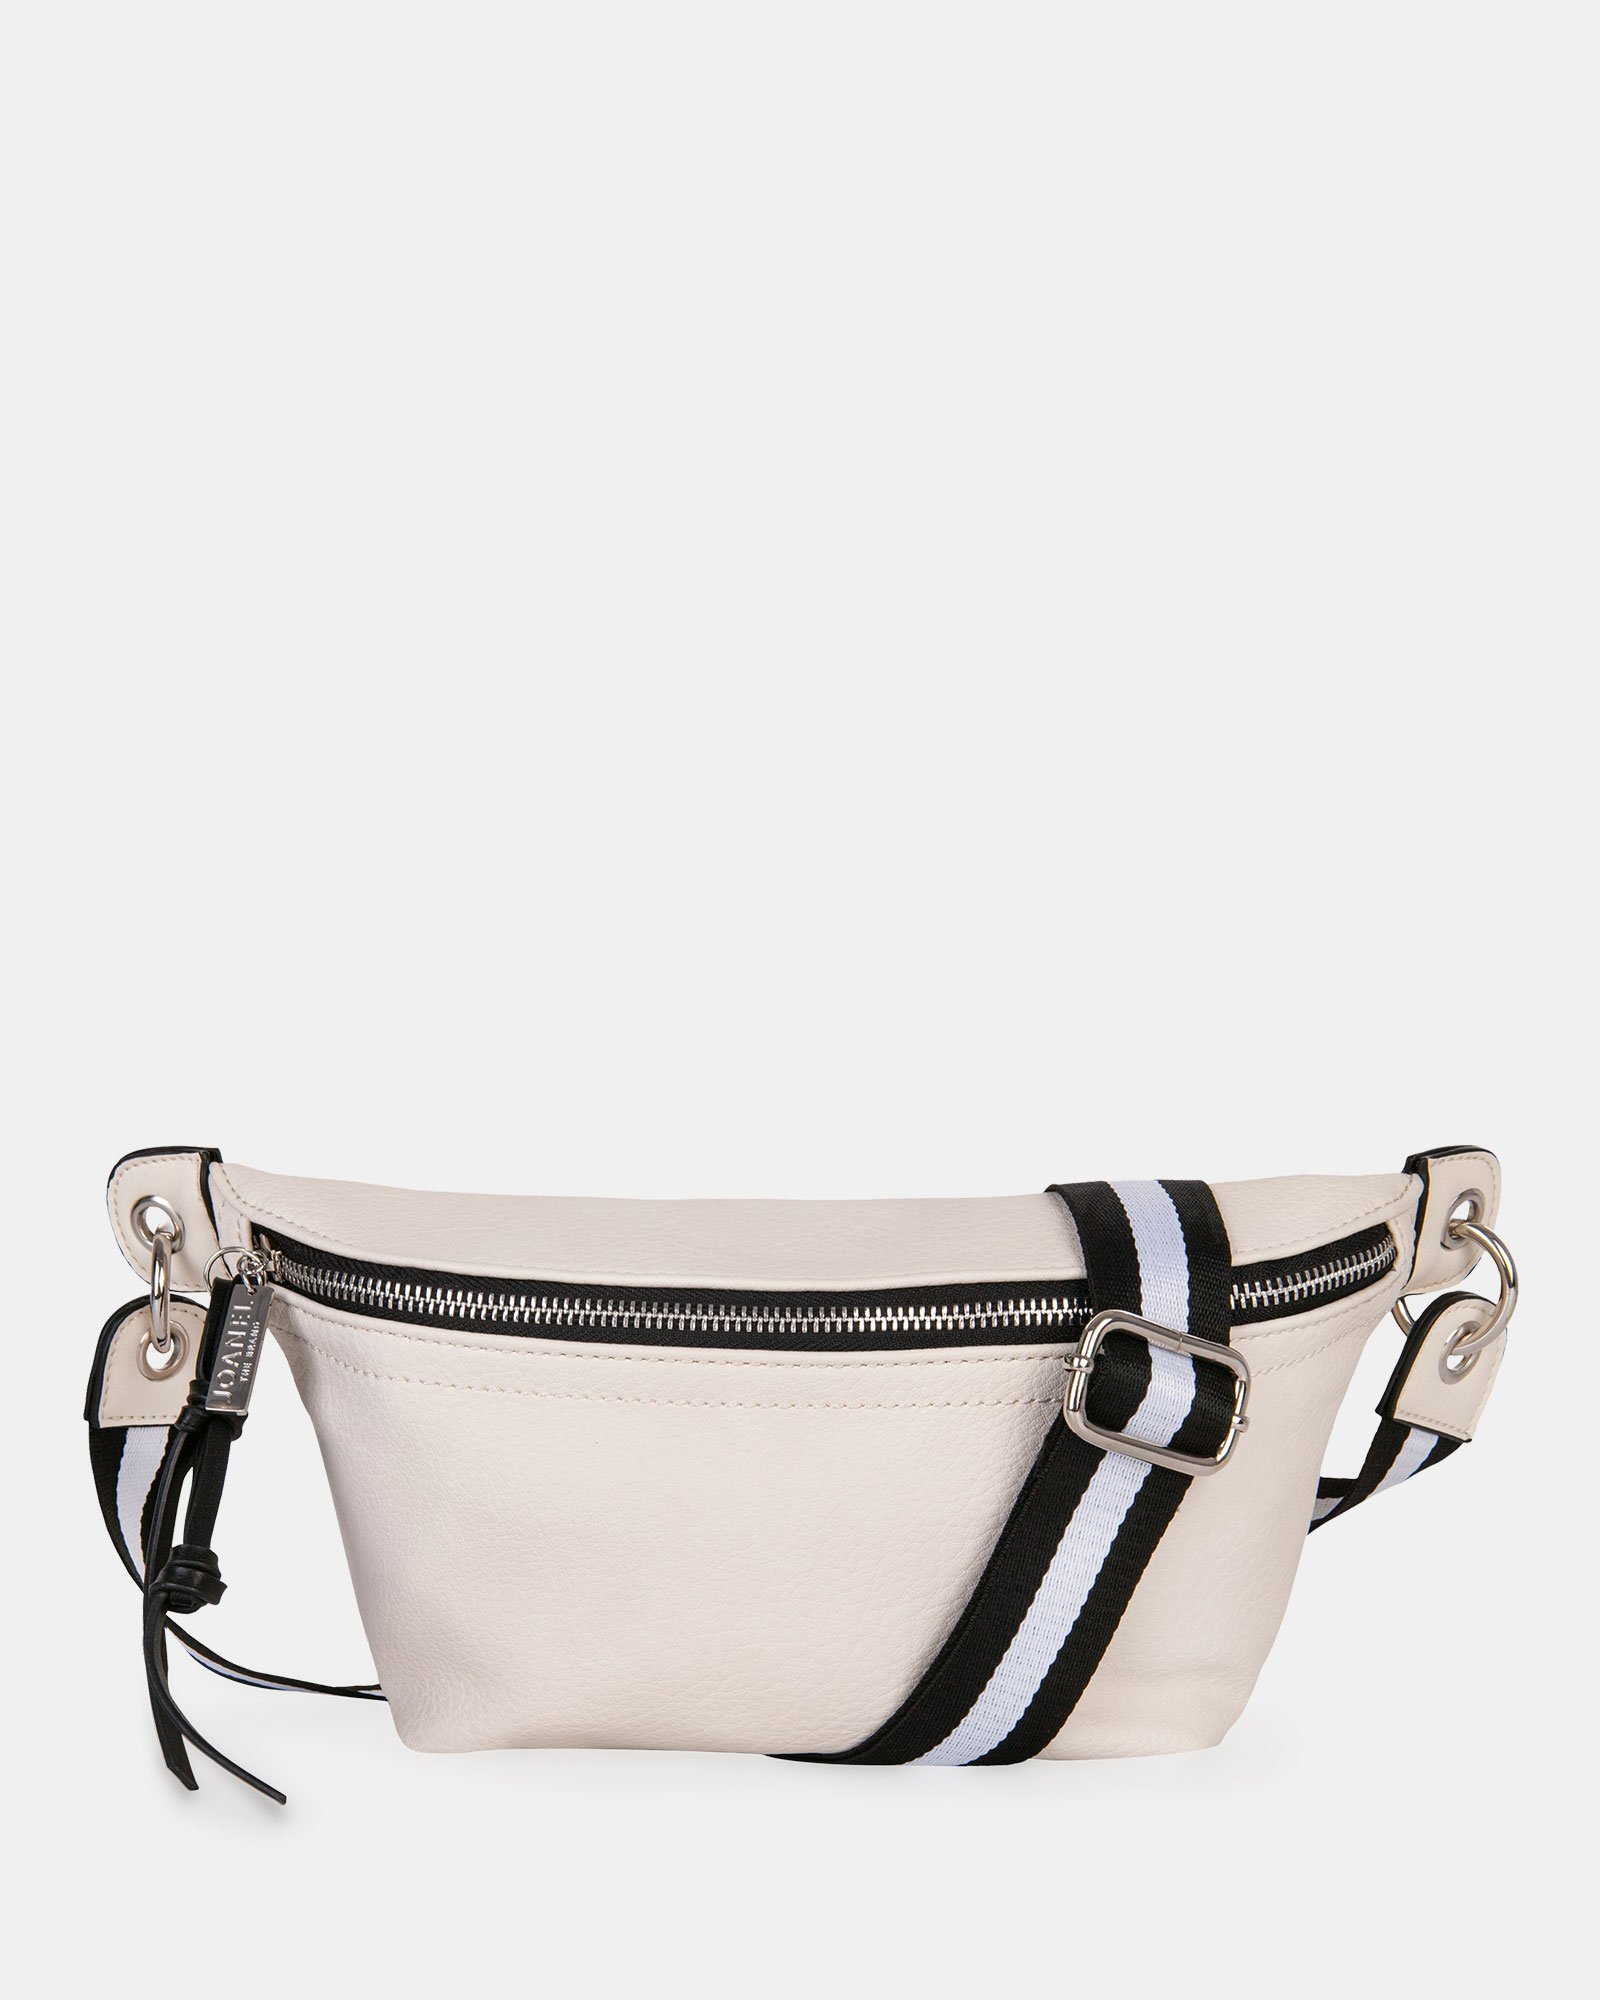 FANNY - Money belt with Main zippered compartment - offwhite - Joanel - Zoom